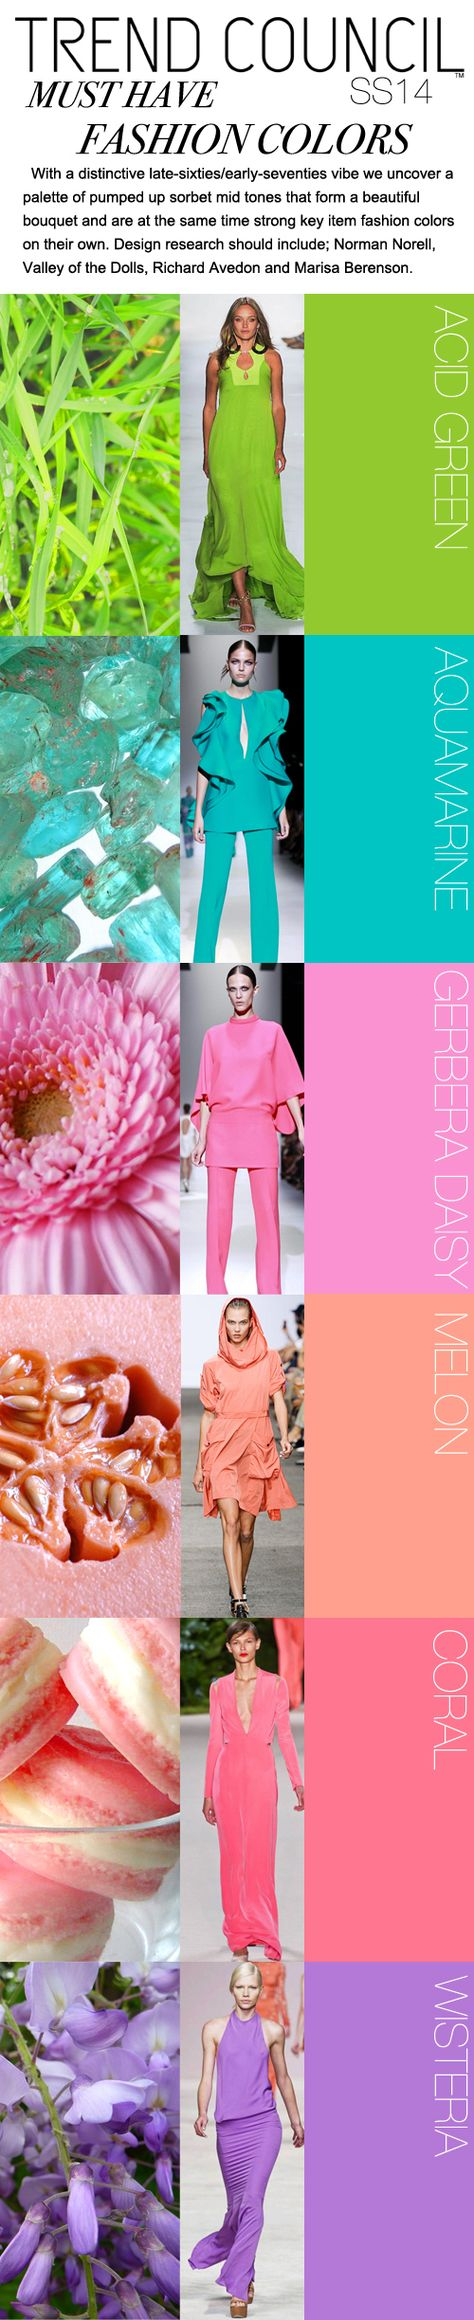 Here is Trend Council's SS 2014 COLOR TRENDS FIRECAST